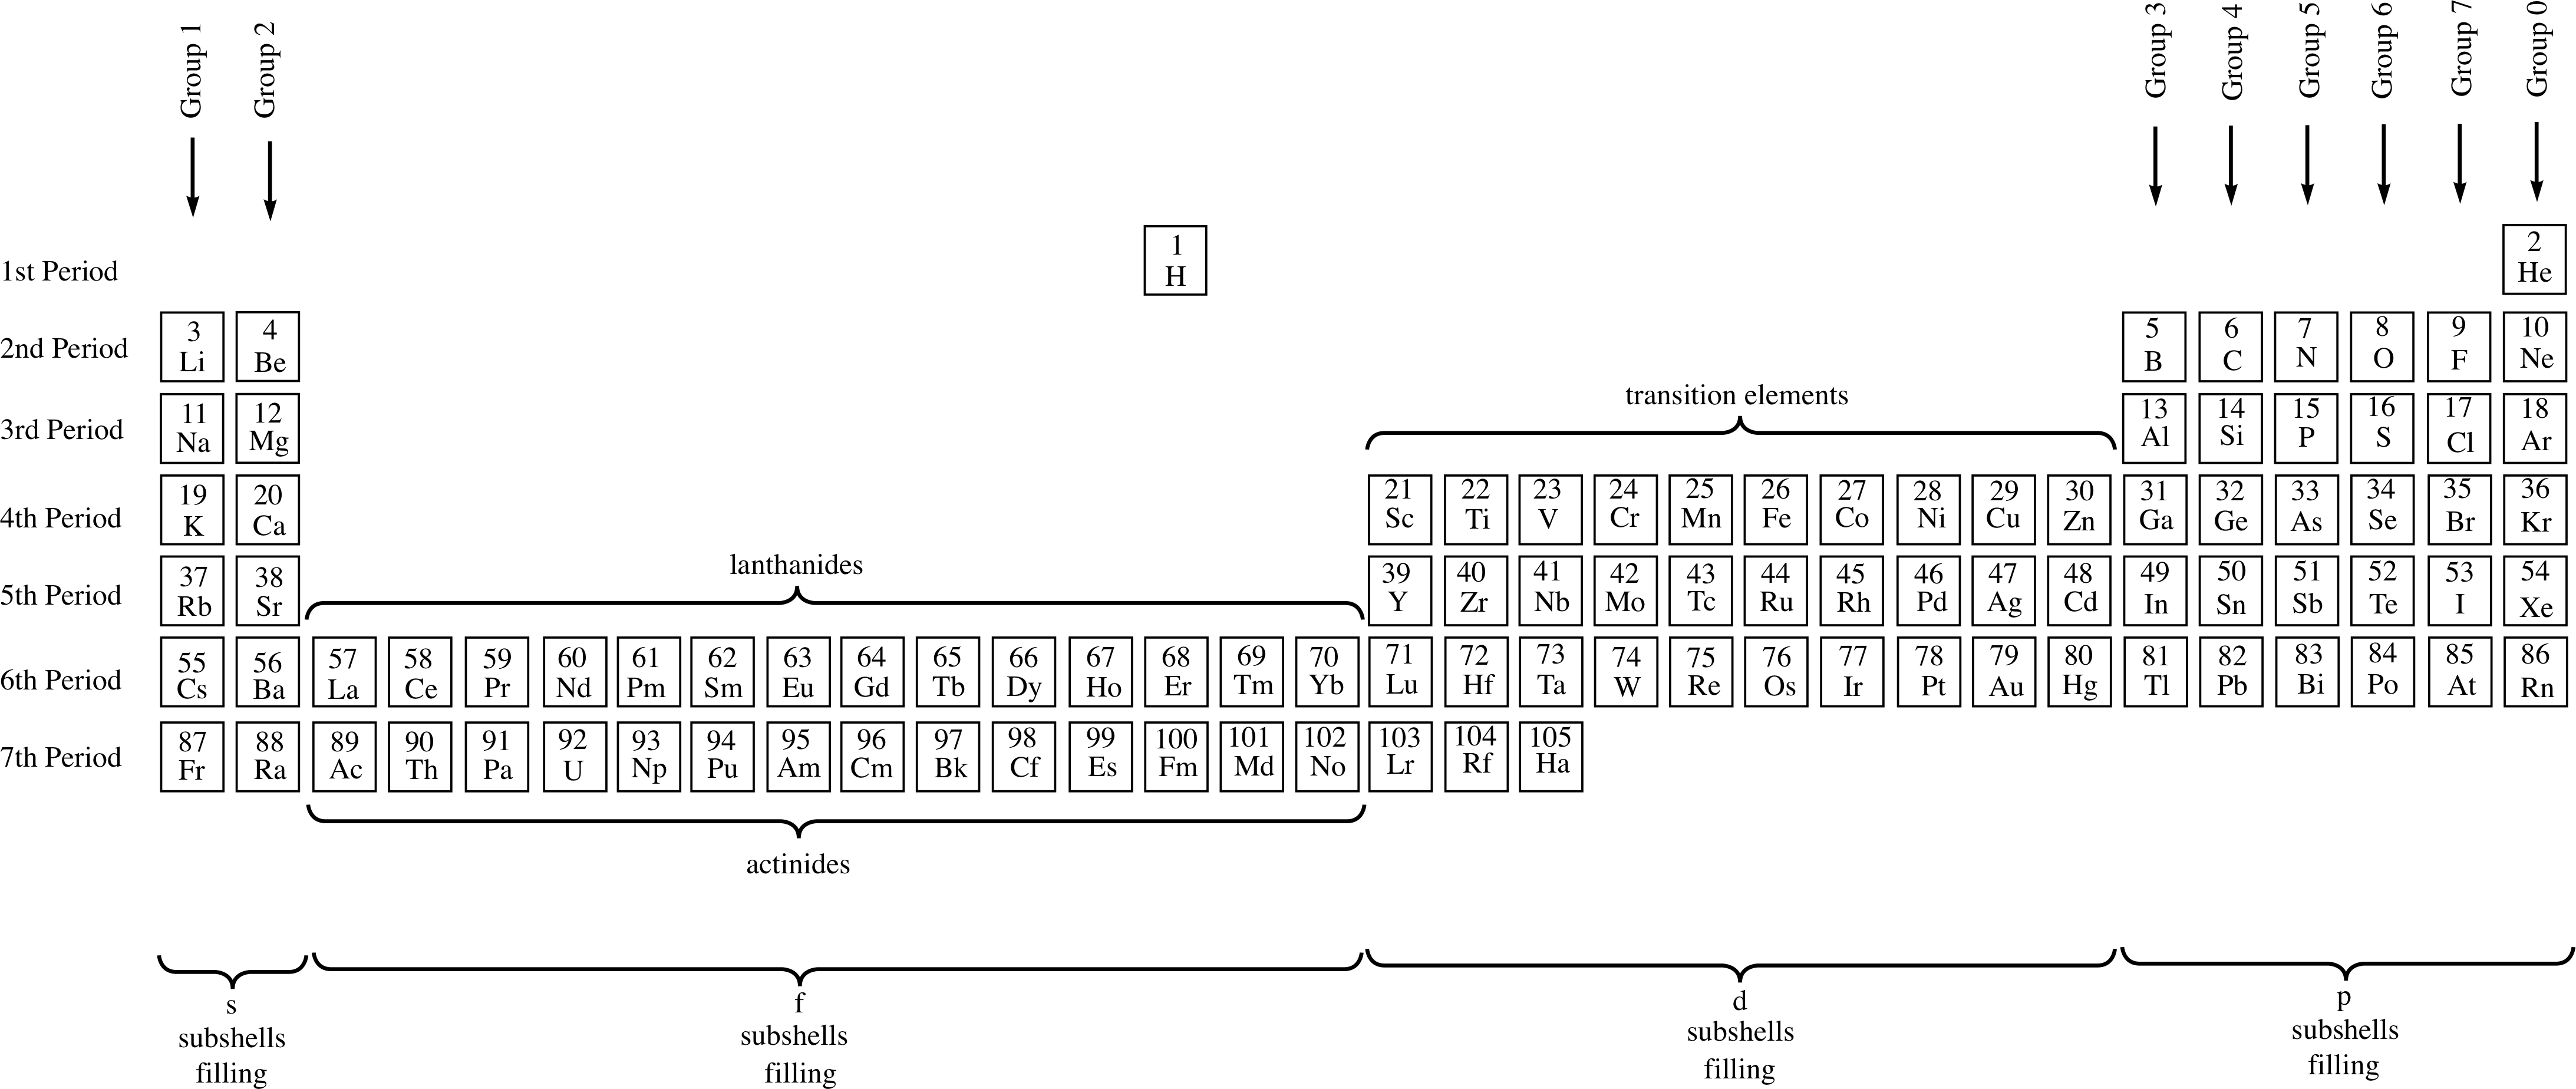 Pplato flap phys 84 the periodic table and chemical bonding 3 the periodic table urtaz Image collections